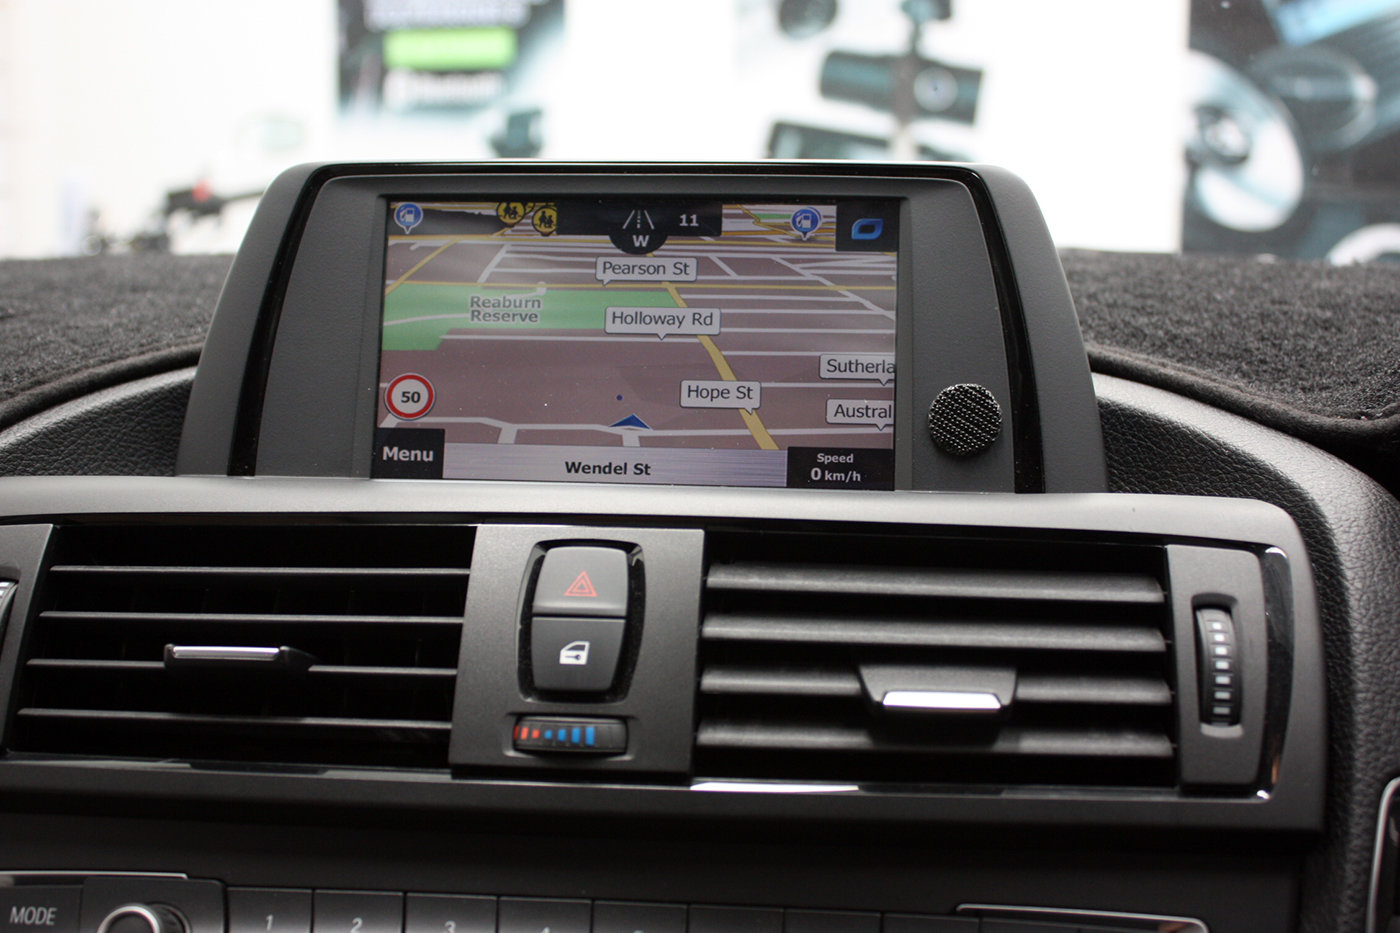 [2012 - Current] BMW F20 1 Series iDrive Add-on Touch GPS Navigation  Upgrade system